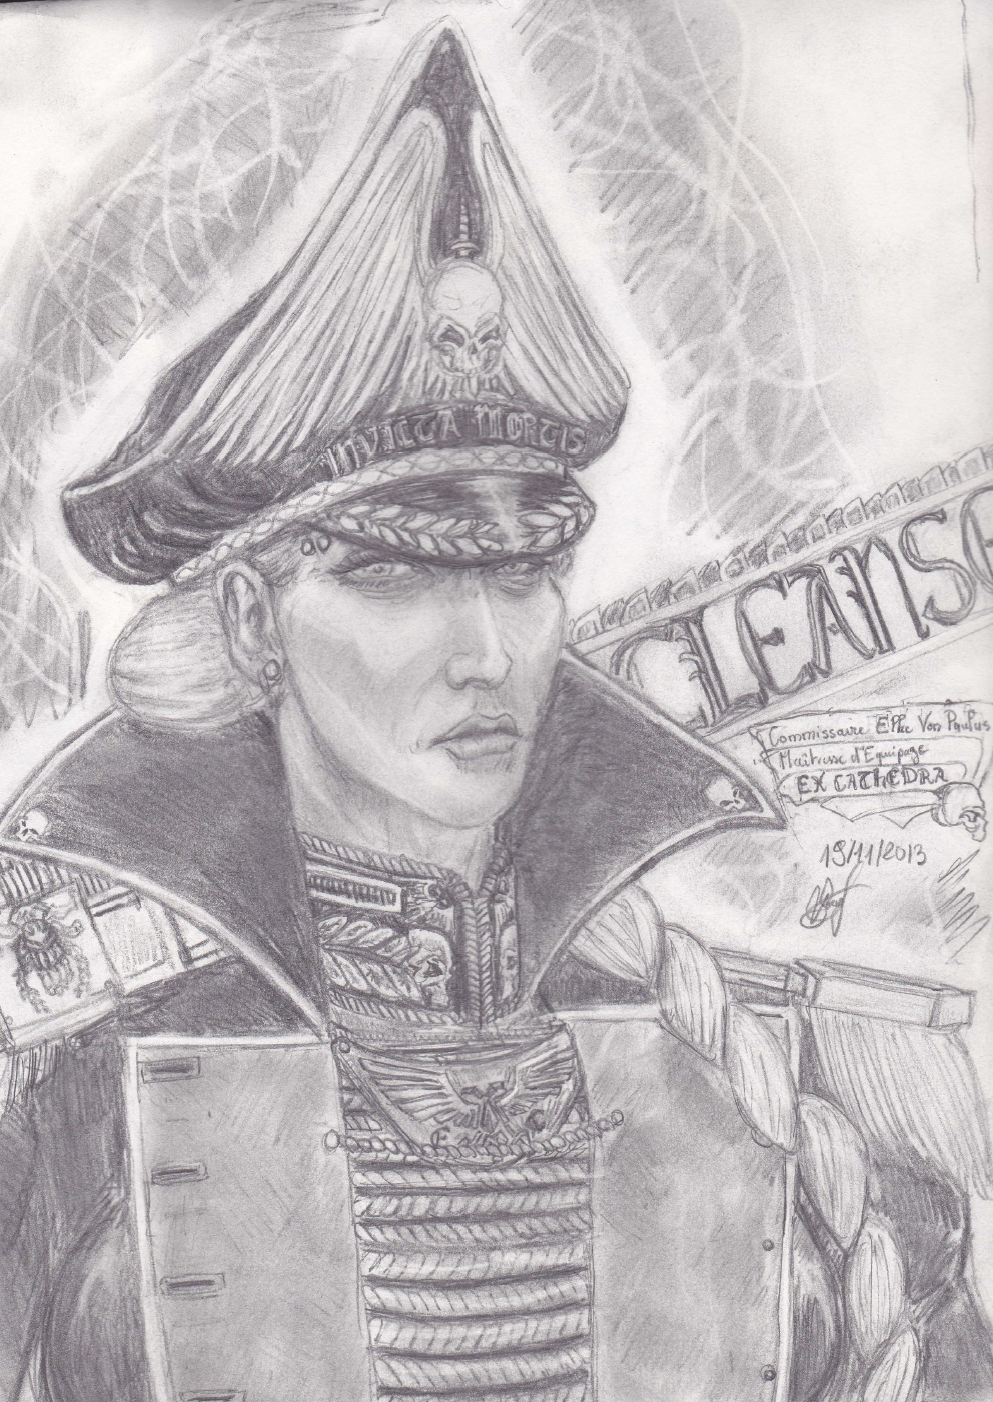 commissar_elke_paulus__chief_bosun_by_hi